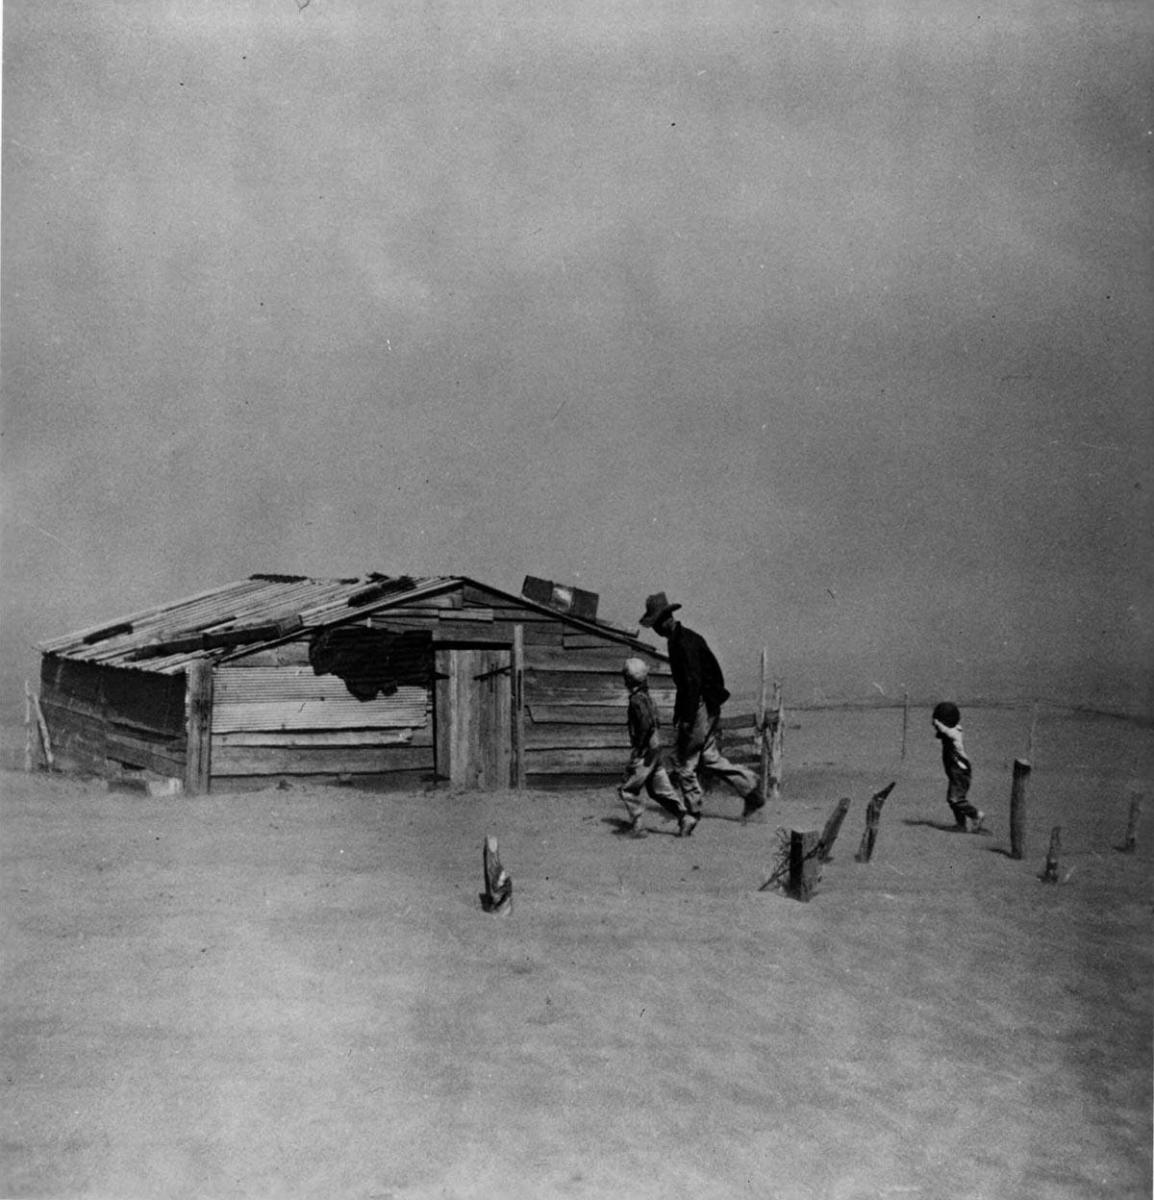 'Fleeing a Dust Storm,' photographed by Arthur Rothstein. (Credit: Farm Security Administration/The Library of Congress)